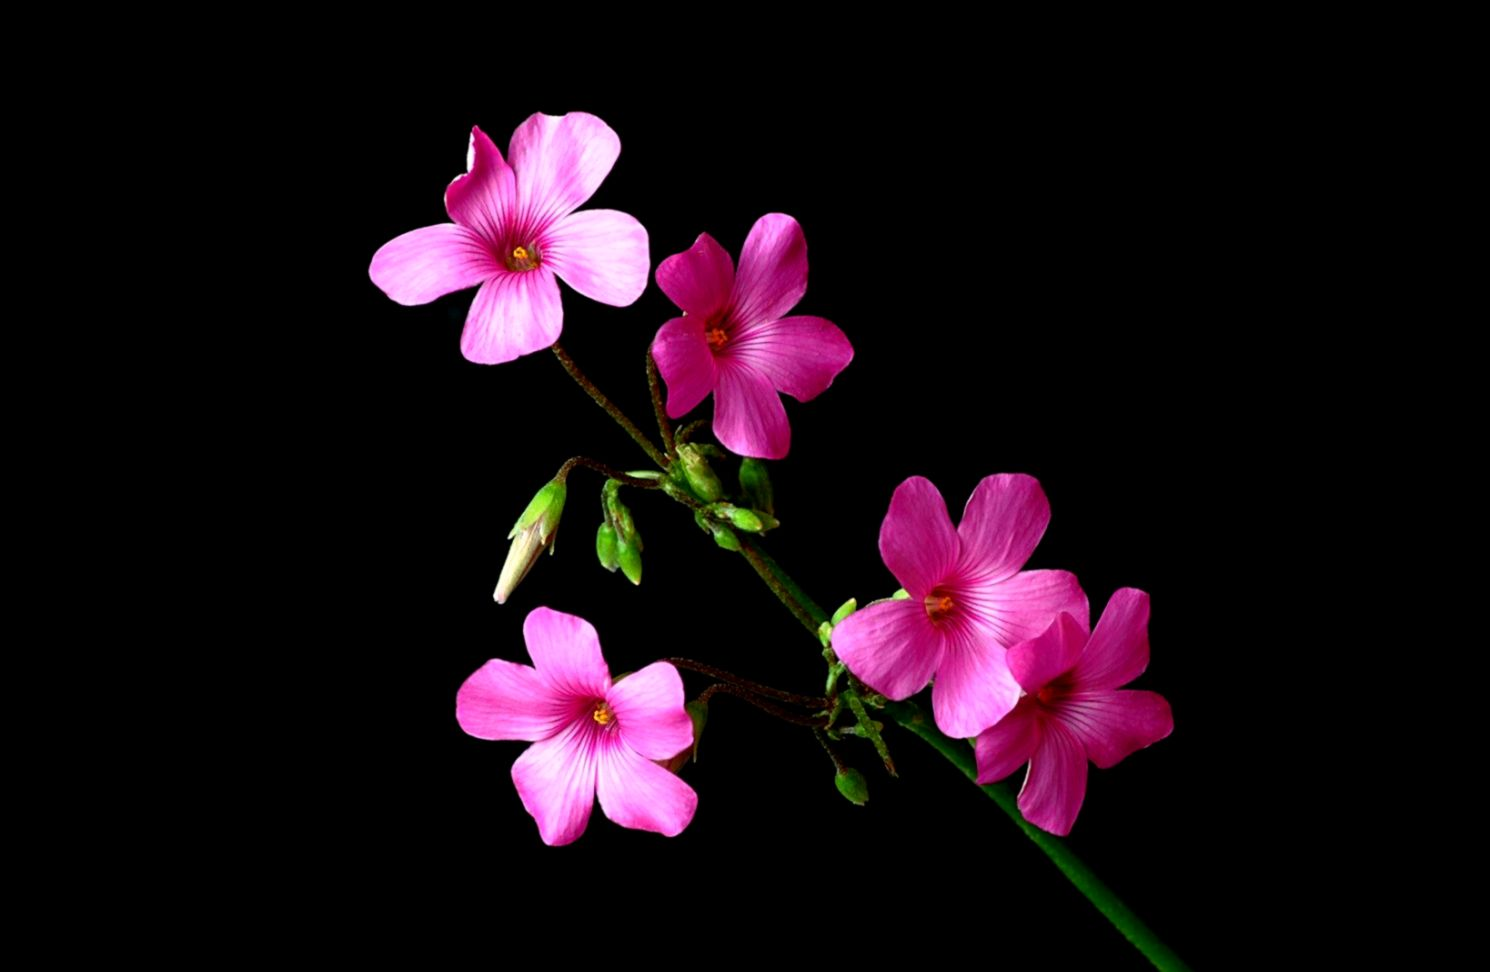 Pink And Black Flower Wallpaper Wallpapers Image 1490x972